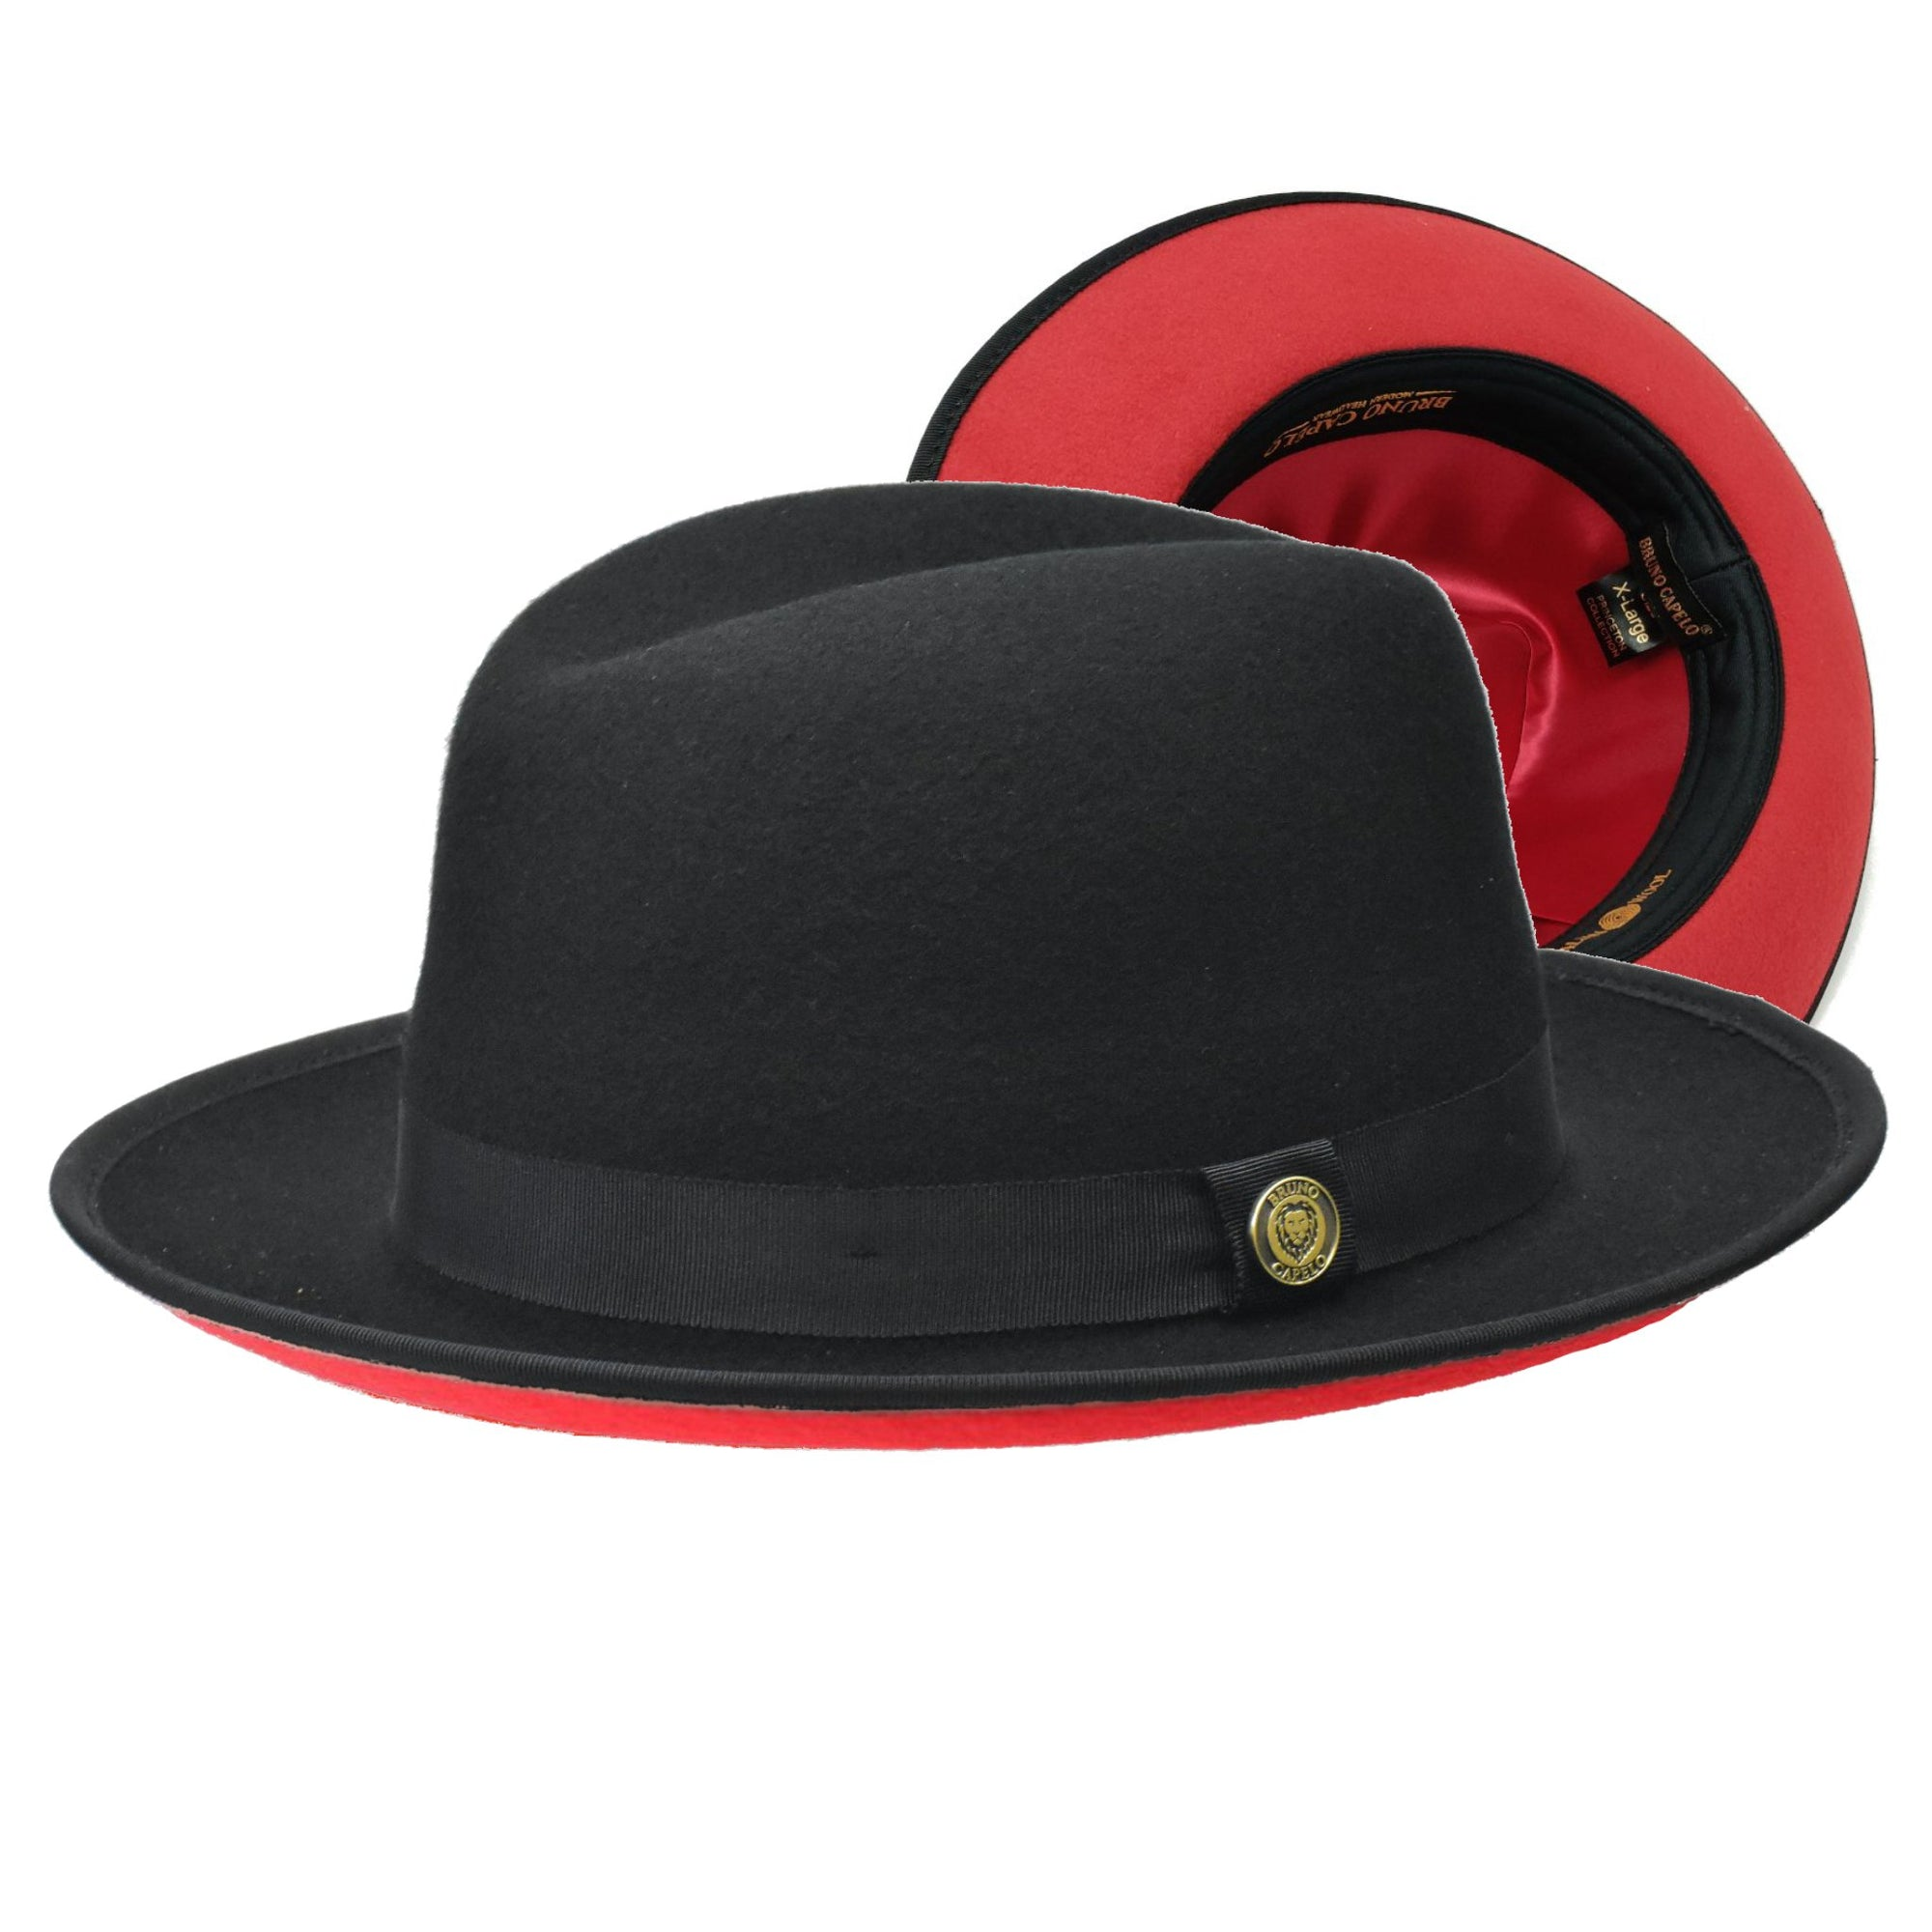 Bruno Capelo Princeton Centerdent Wool Red Bottom Homburg (Godfather) Hat - Dapperfam.com